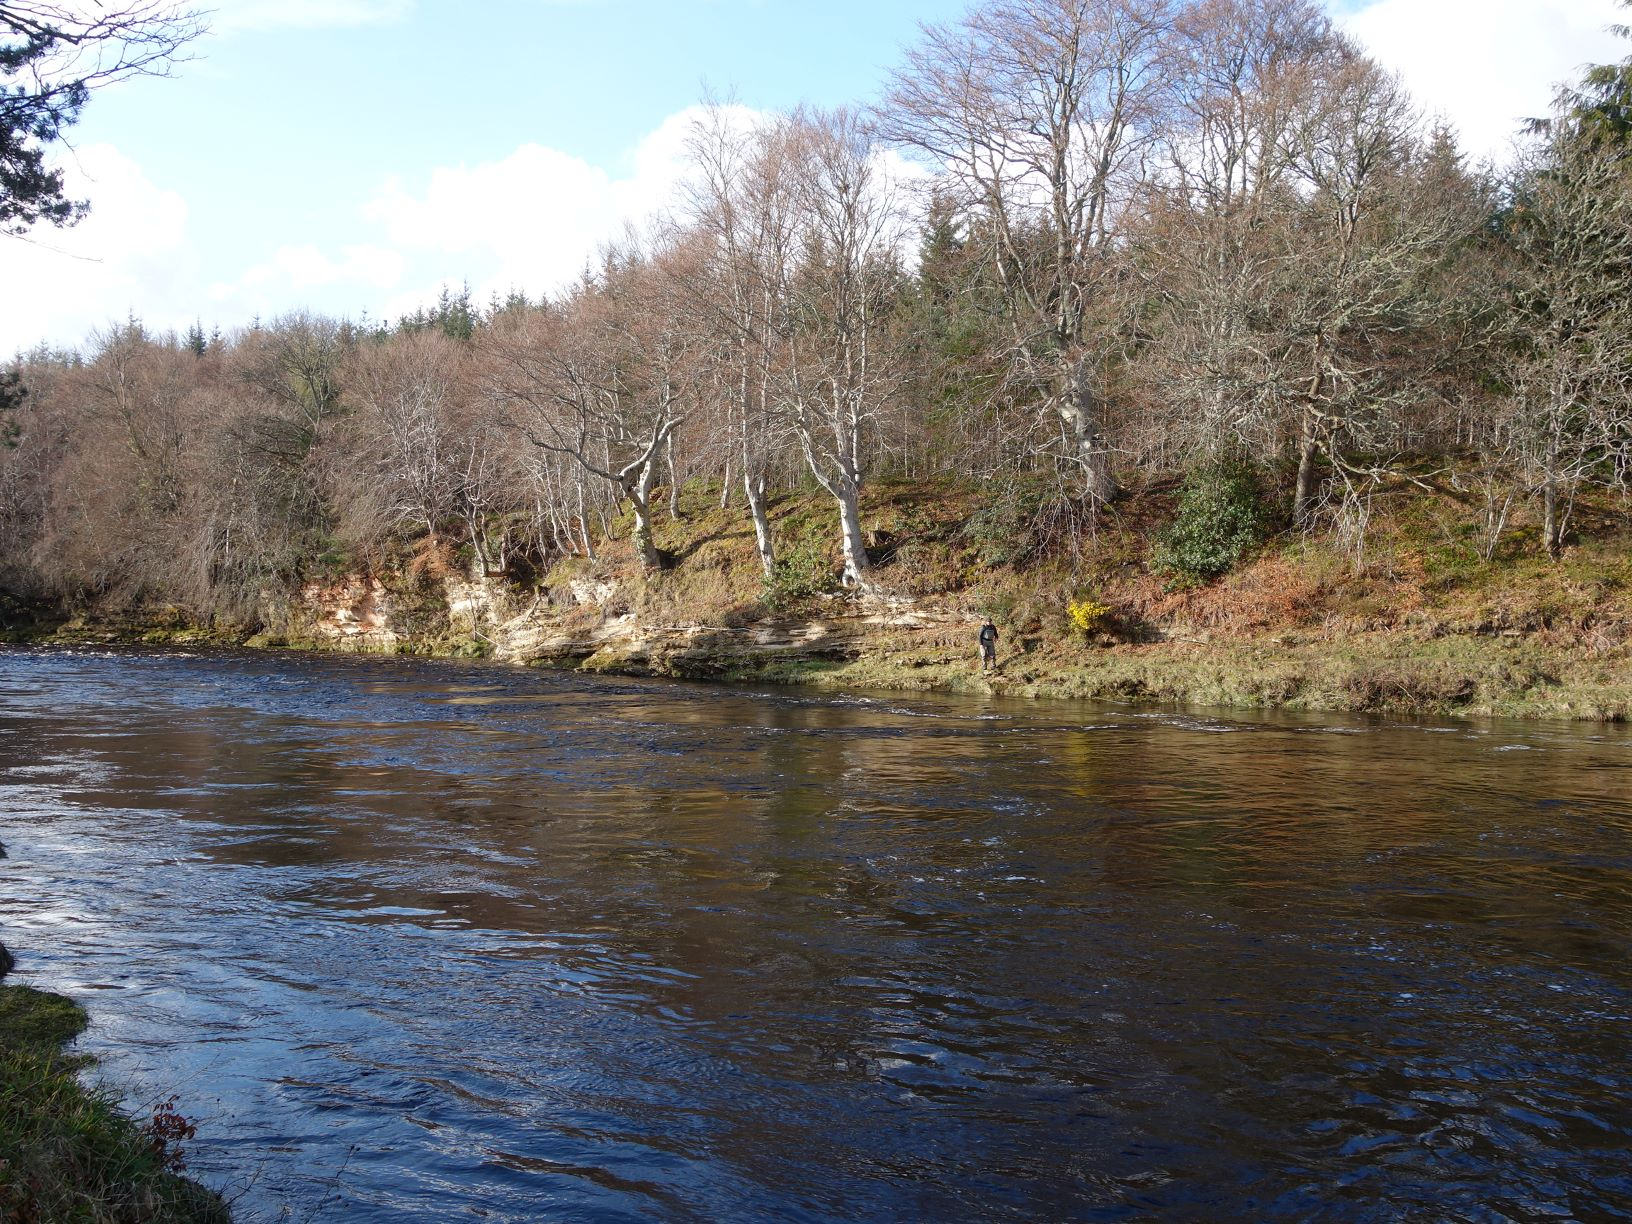 Palamore Island Pool on Meads of St. John, Darnaway, River Findhorn